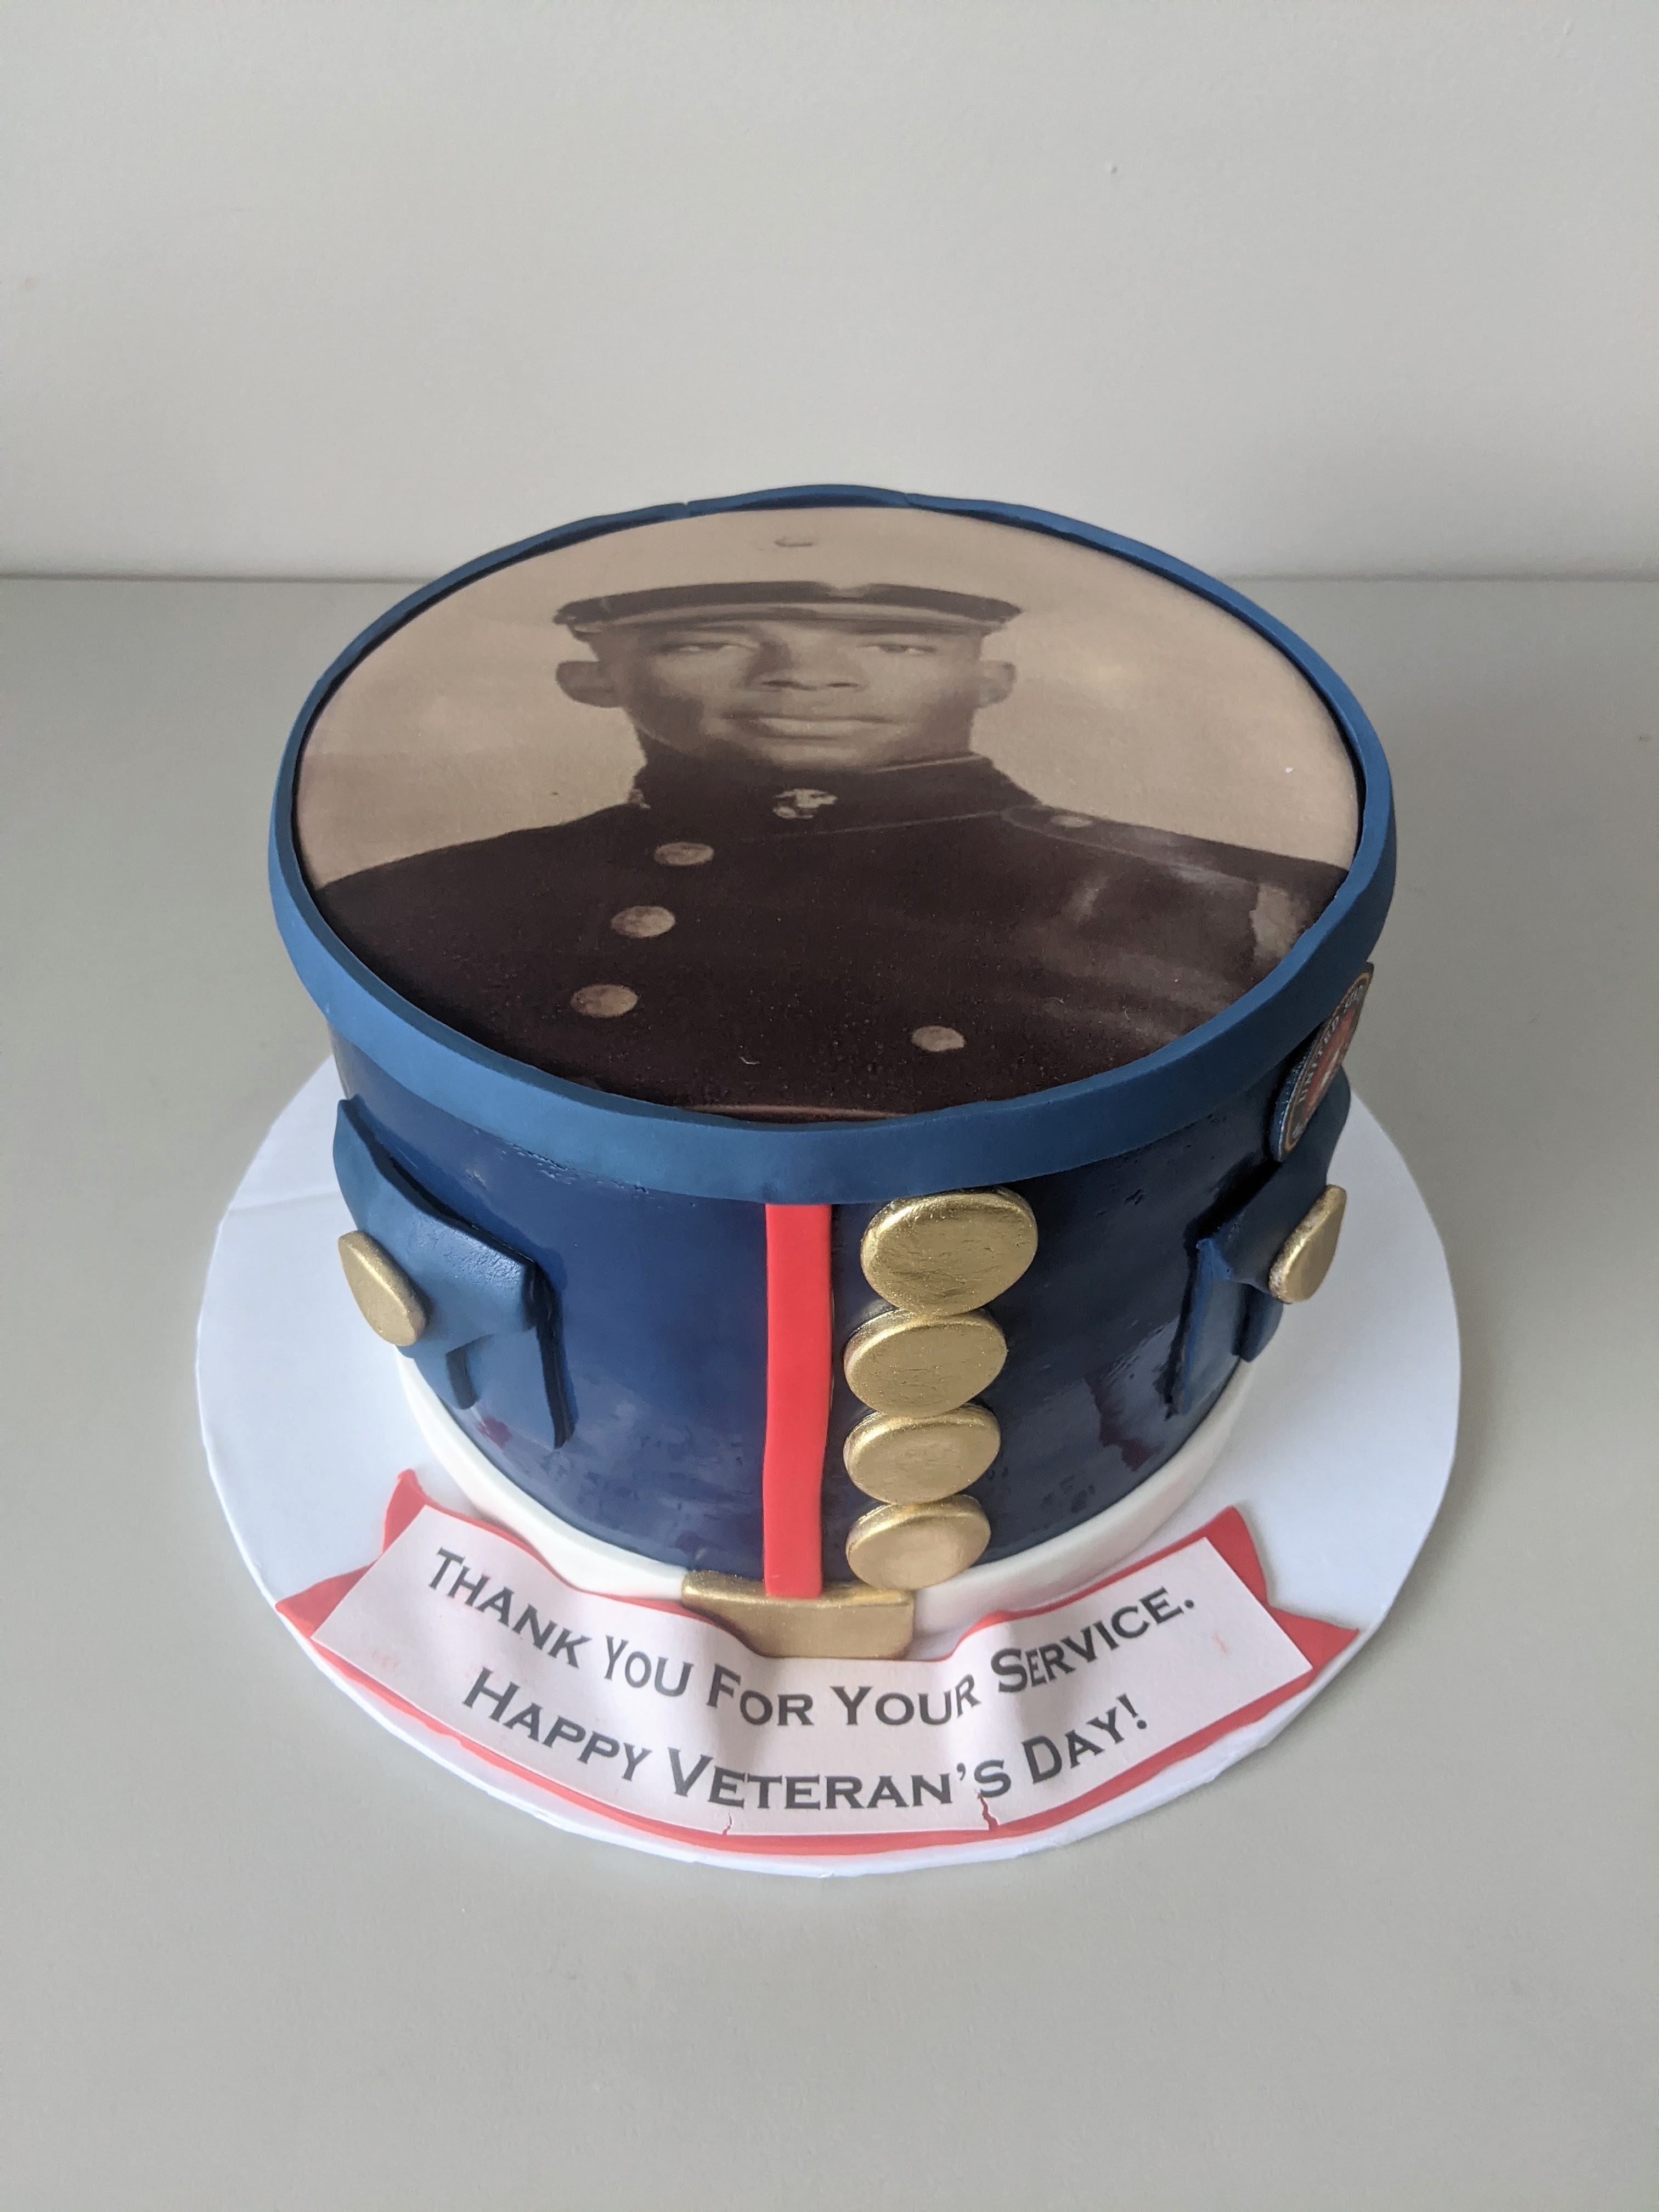 Navy Veteran's Day Cake